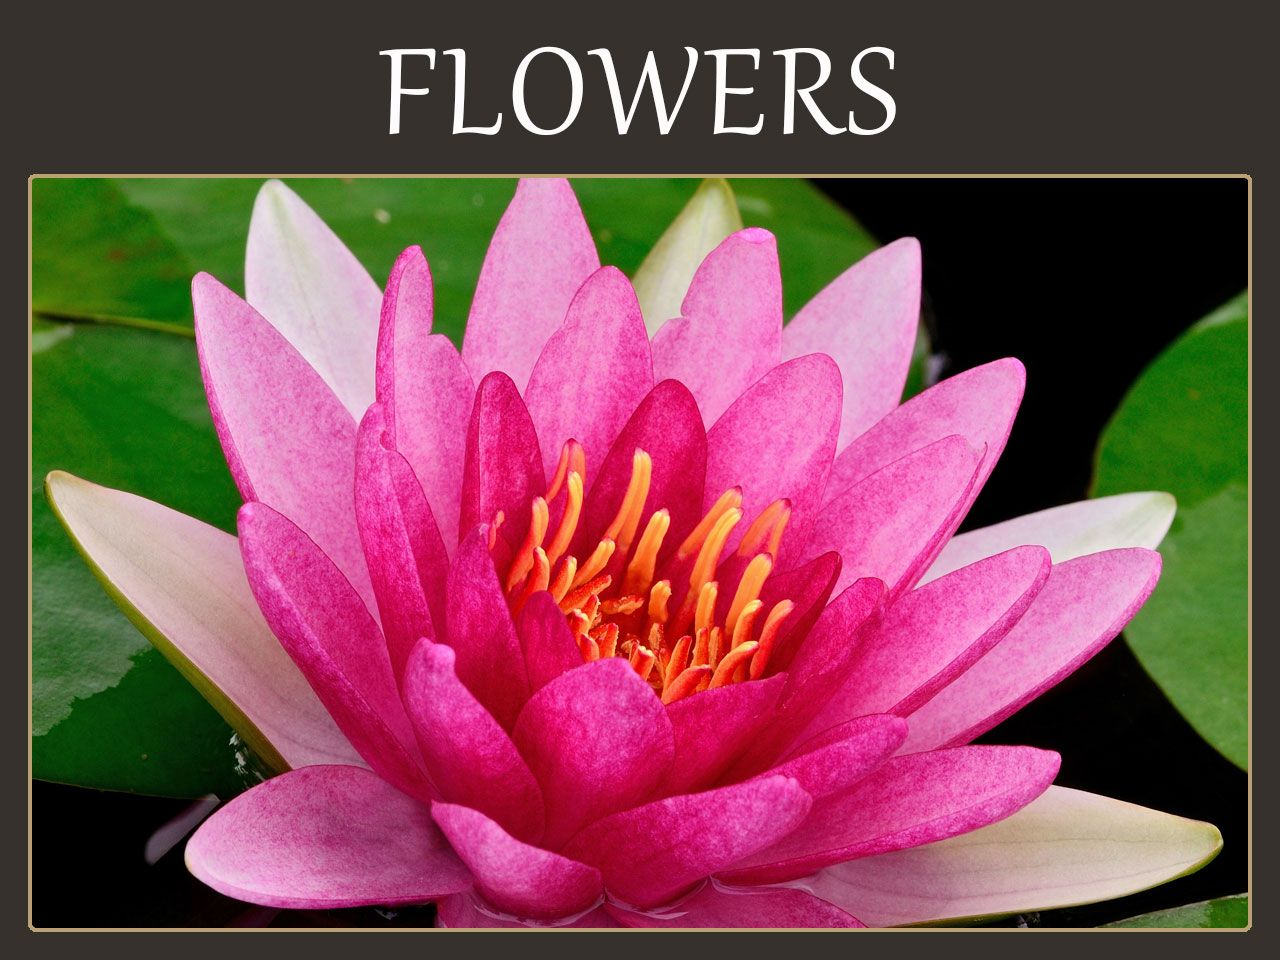 Flower Meanings Birth flowers, Flower meanings, Language